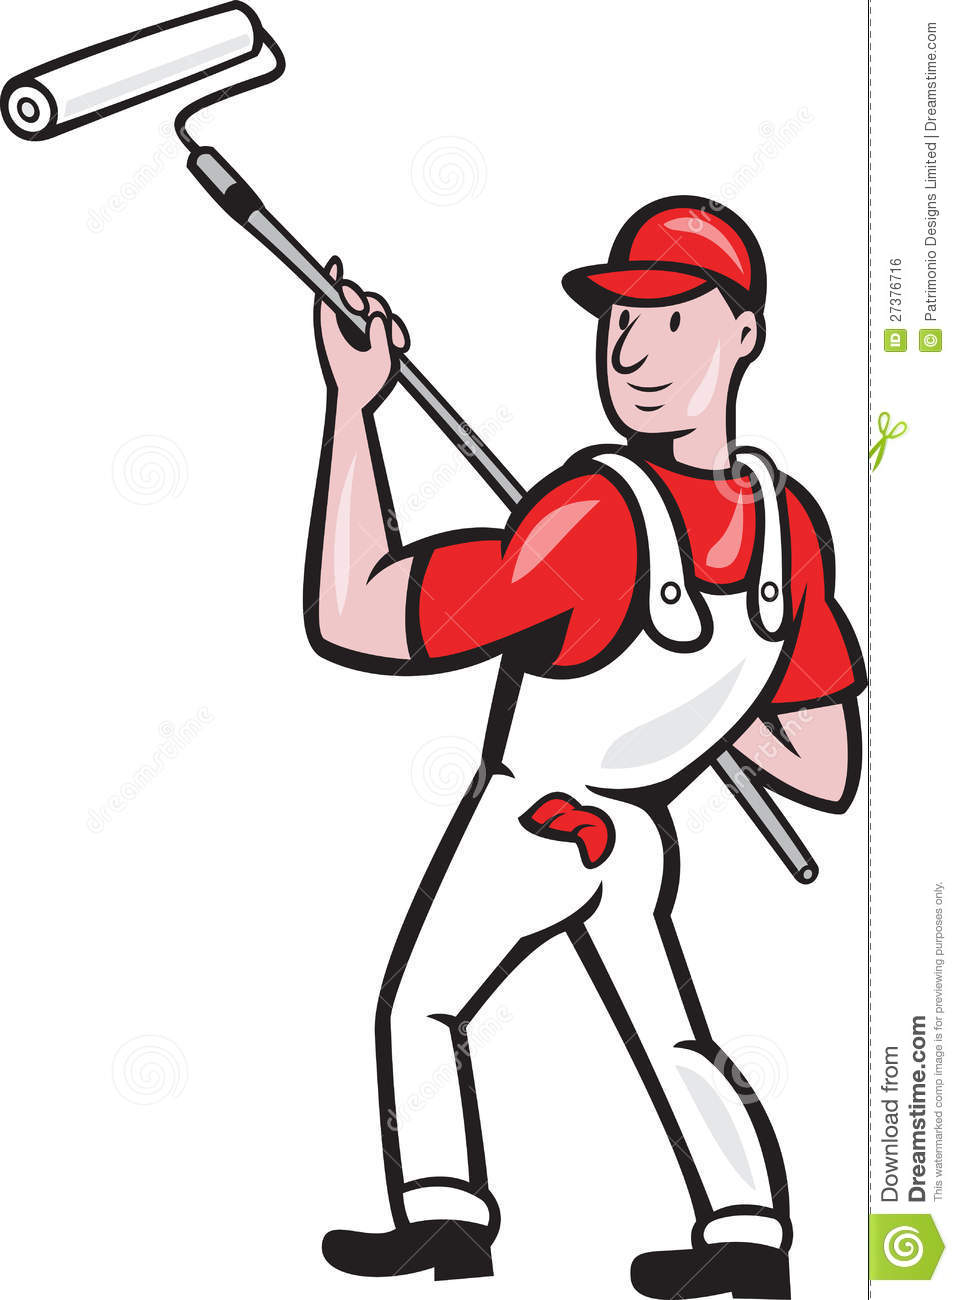 House Painter With Paint Roller Cartoon Royalty Free Stock Image ...